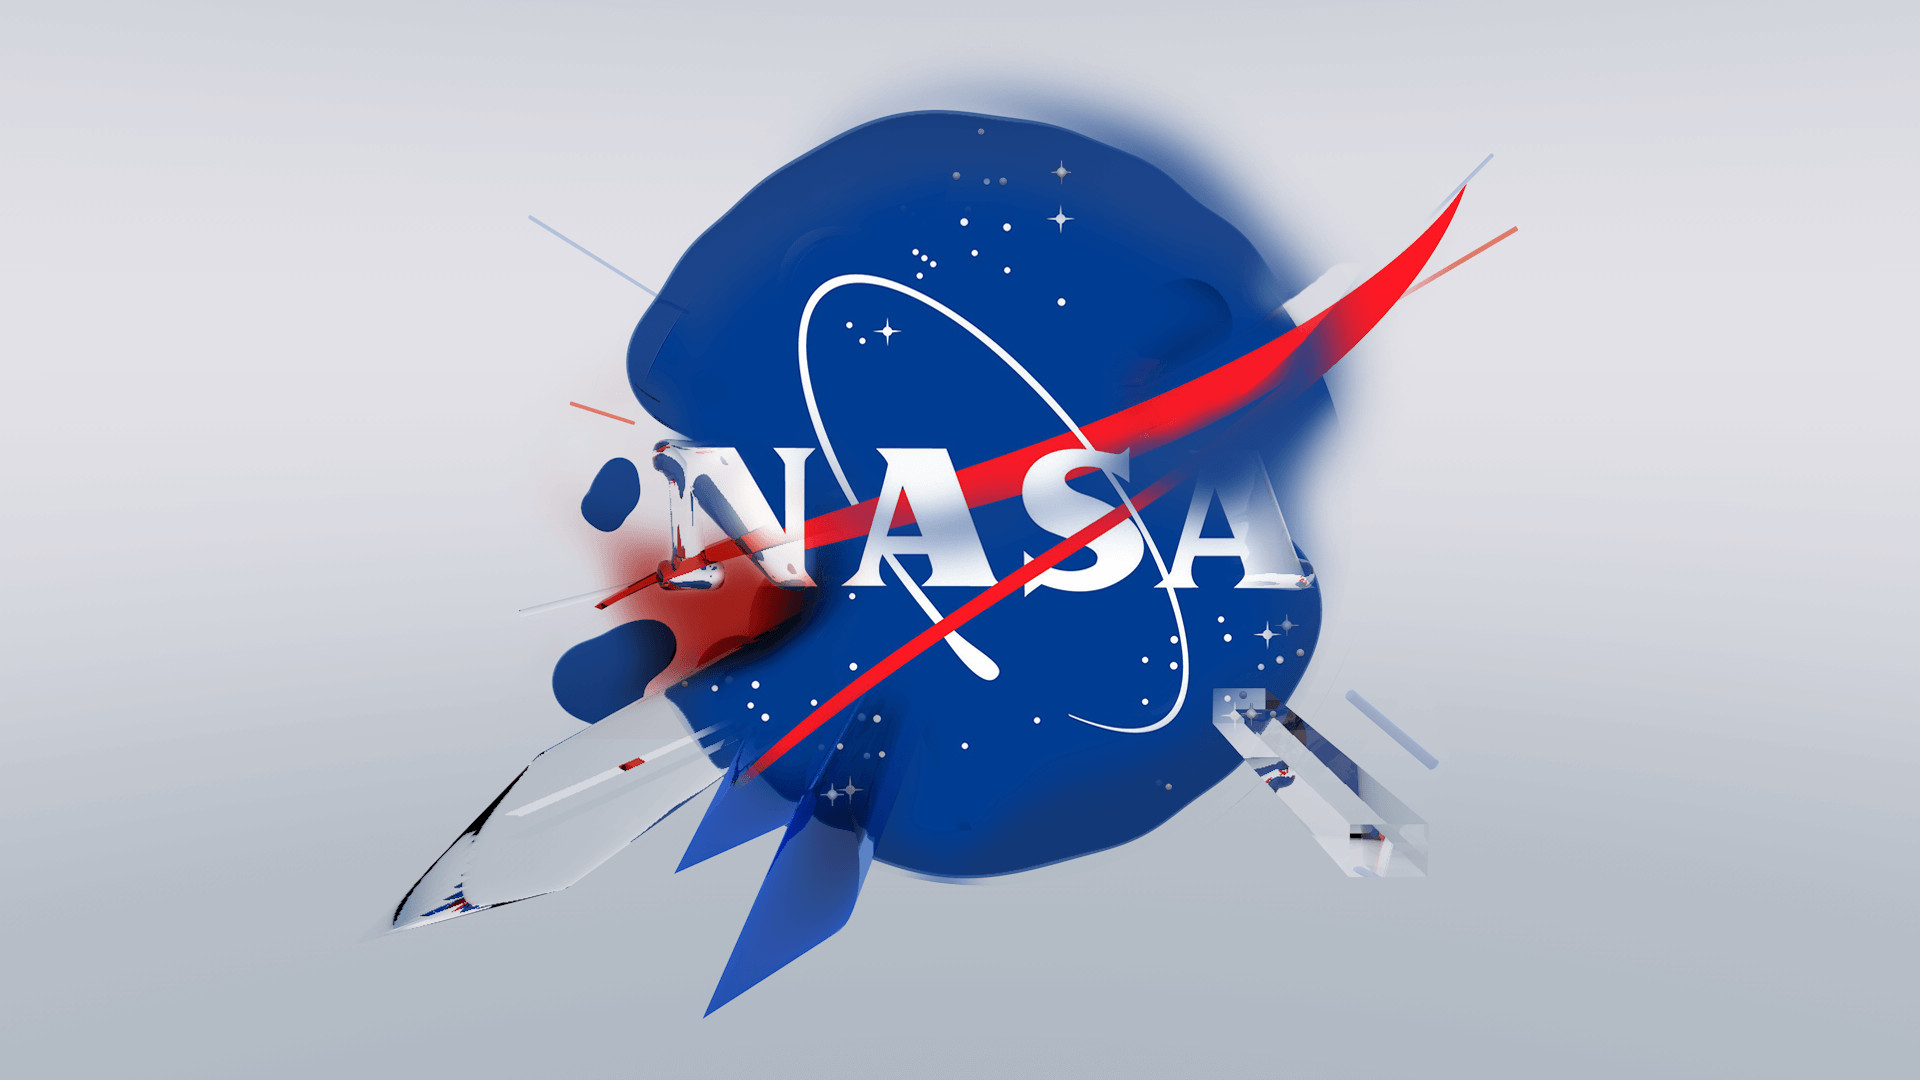 Nasa logo wallpaper 61 images - Nasa space wallpaper 1920x1080 ...